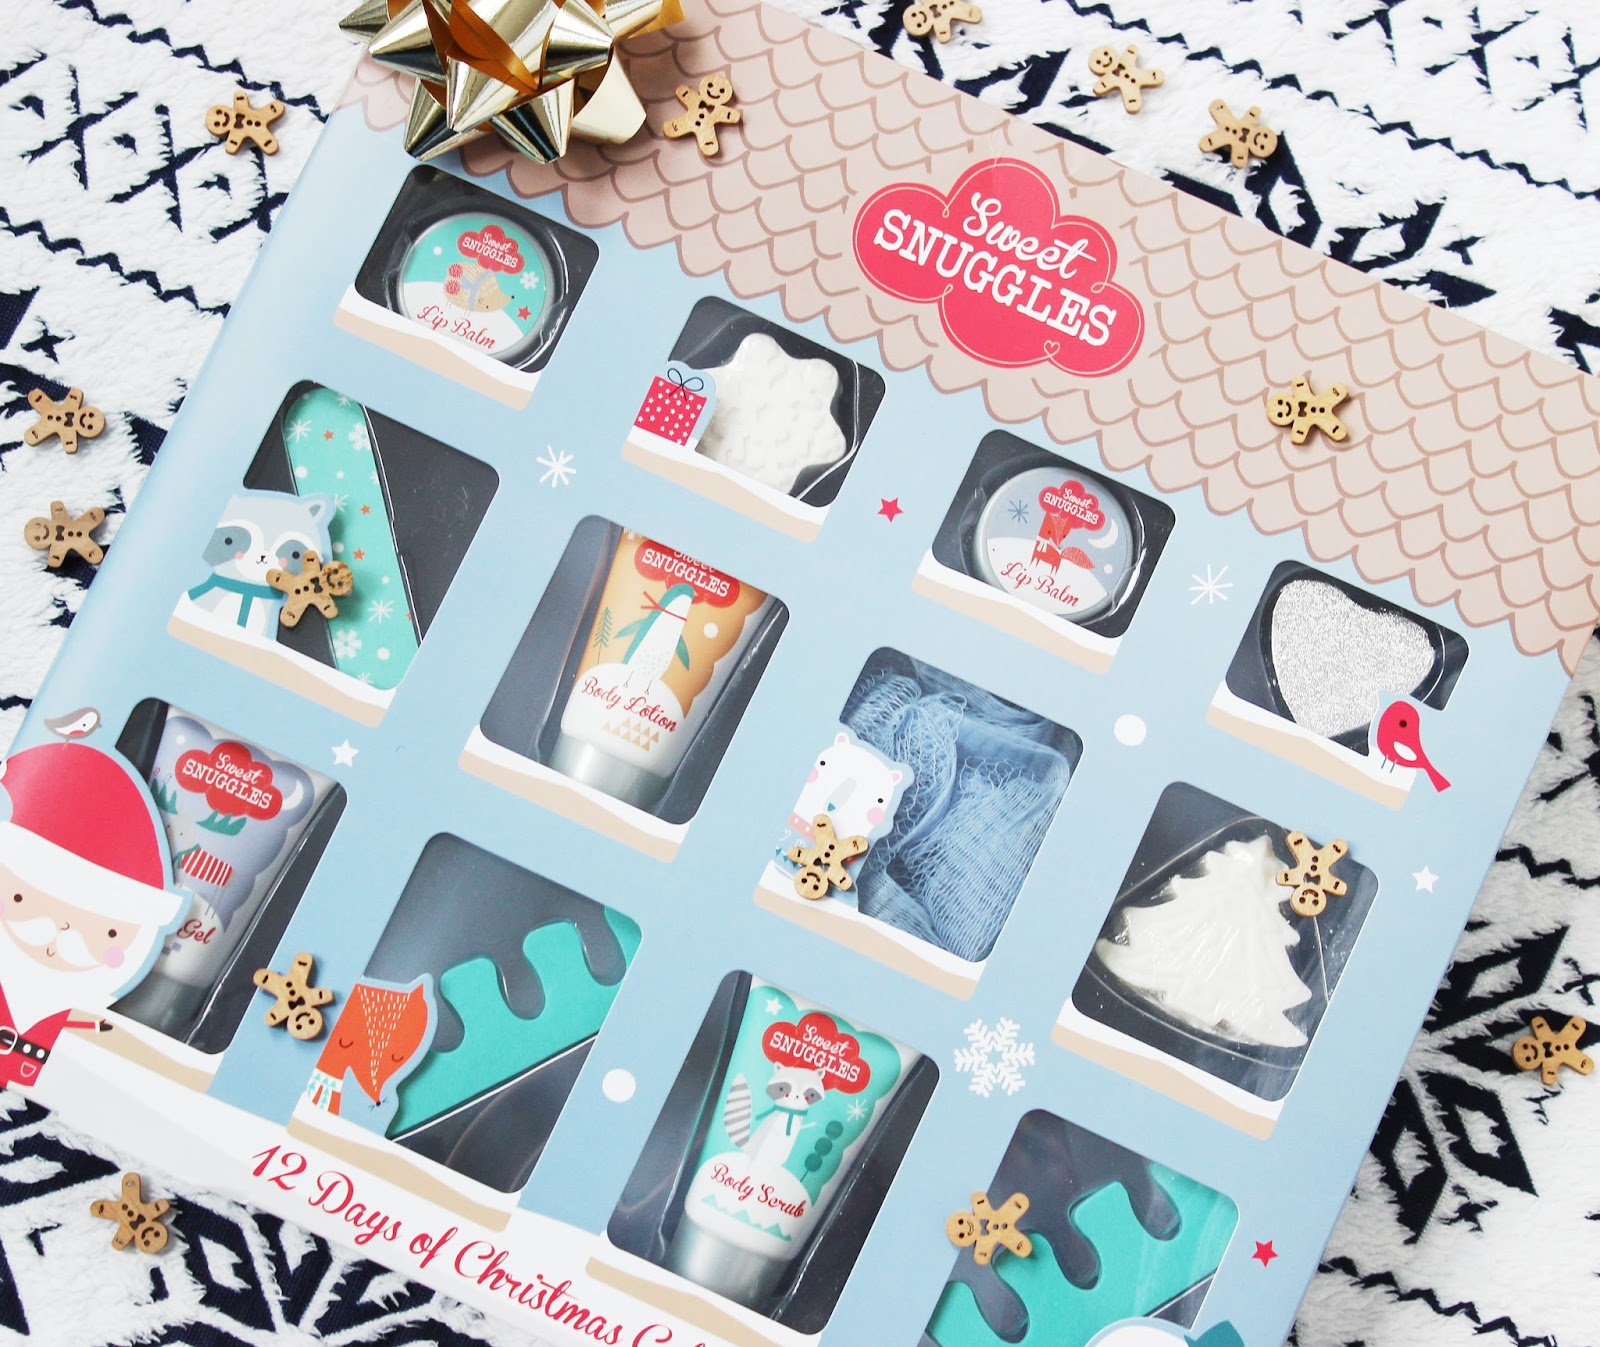 Budget friendly beauty advent calendars for £15 or less